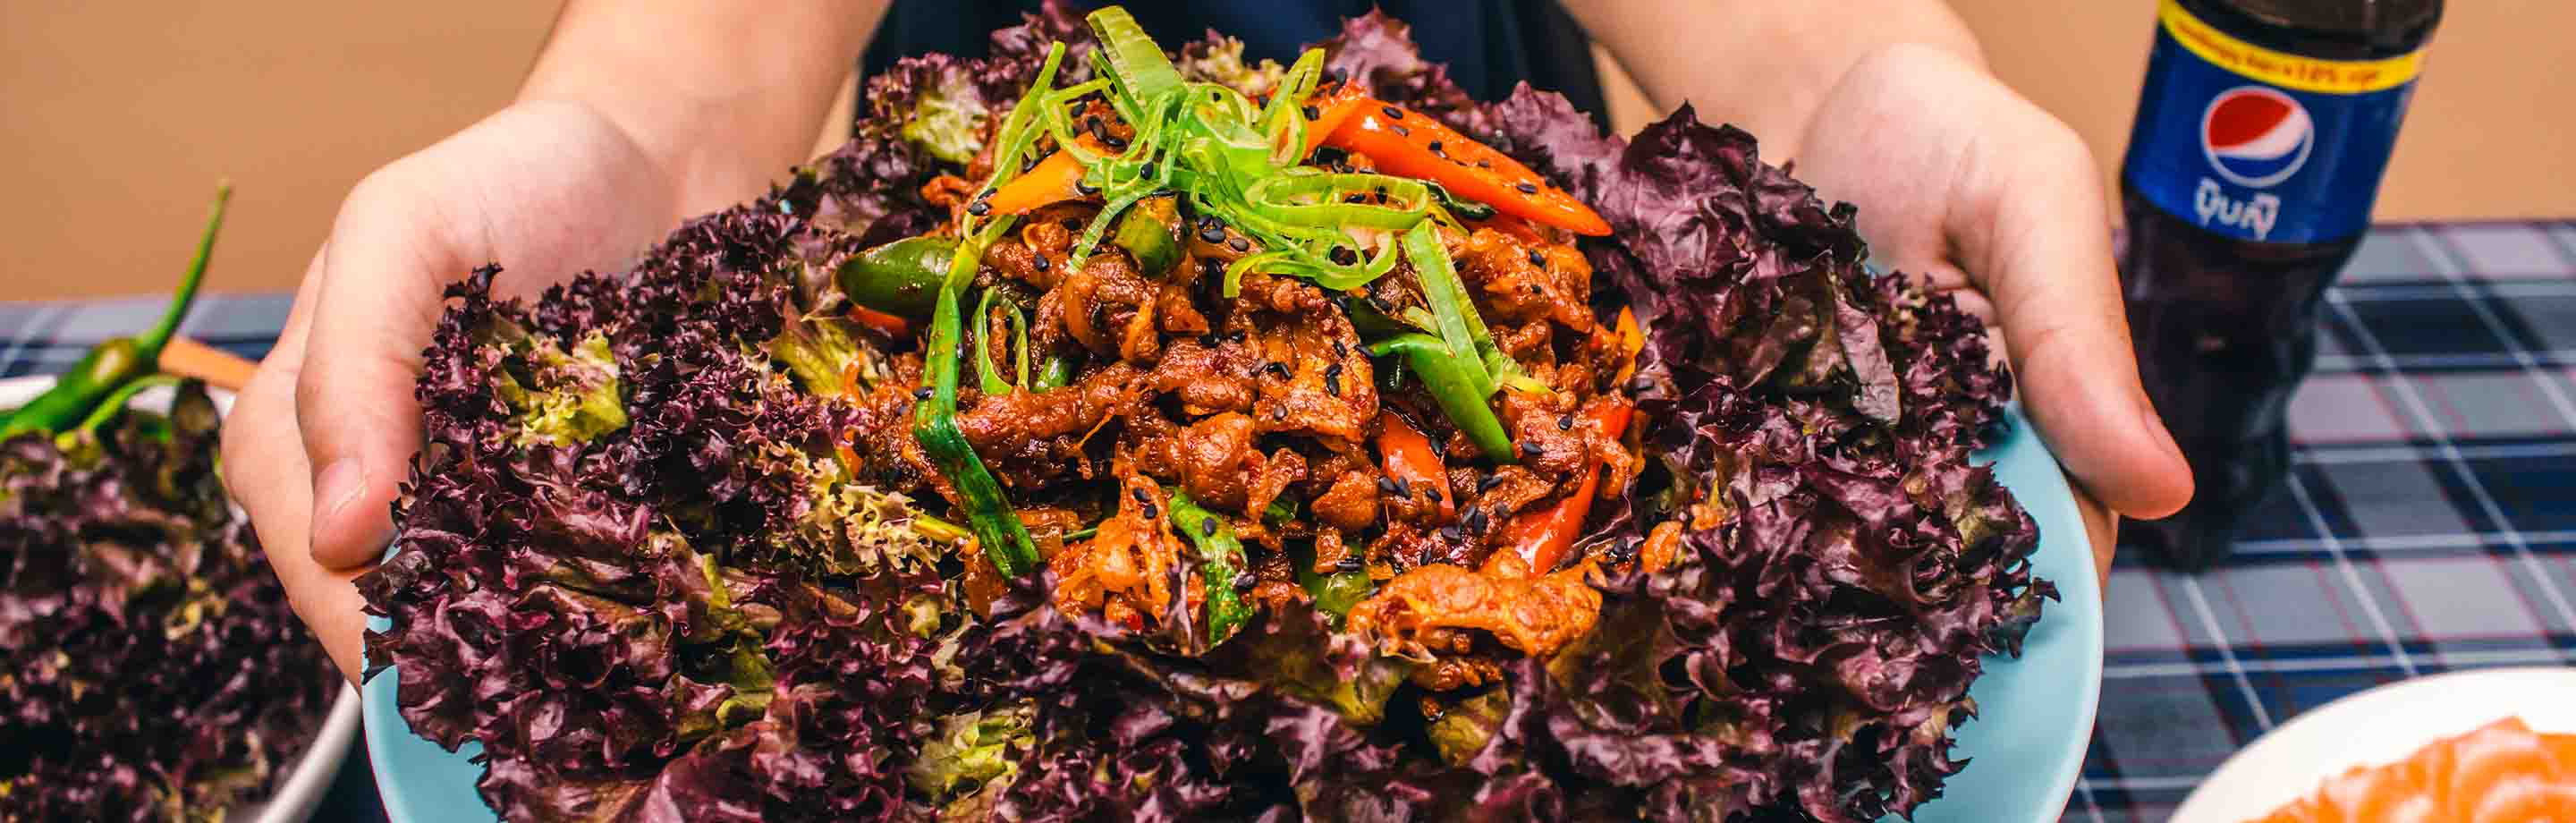 Quick and easy Bulgogi recipe from Daro to be enjoyed this weekend!